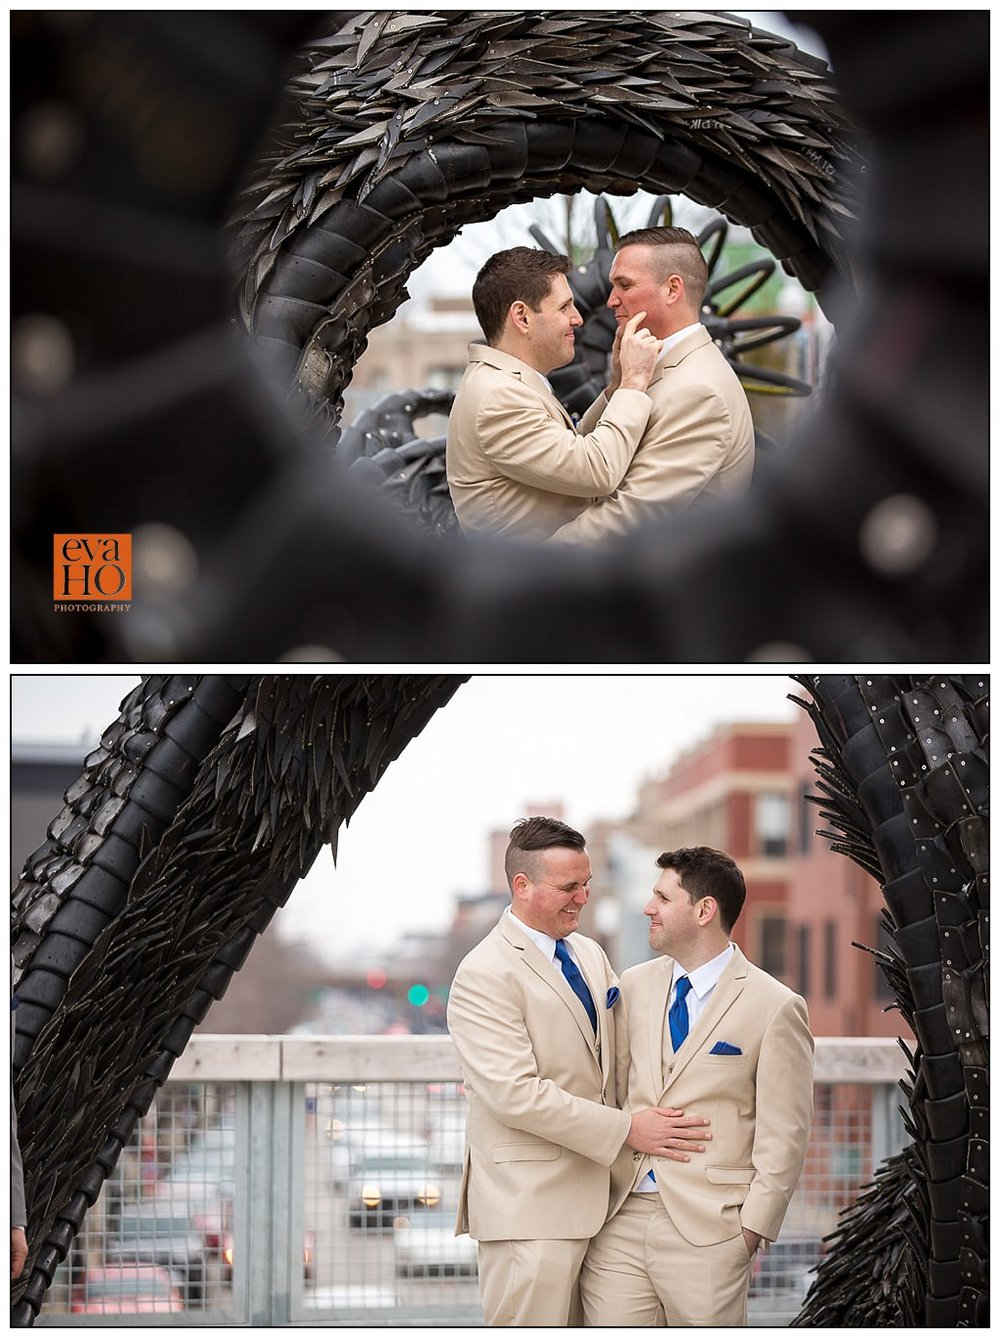 The two grooms spending some quality time together before the ceremony